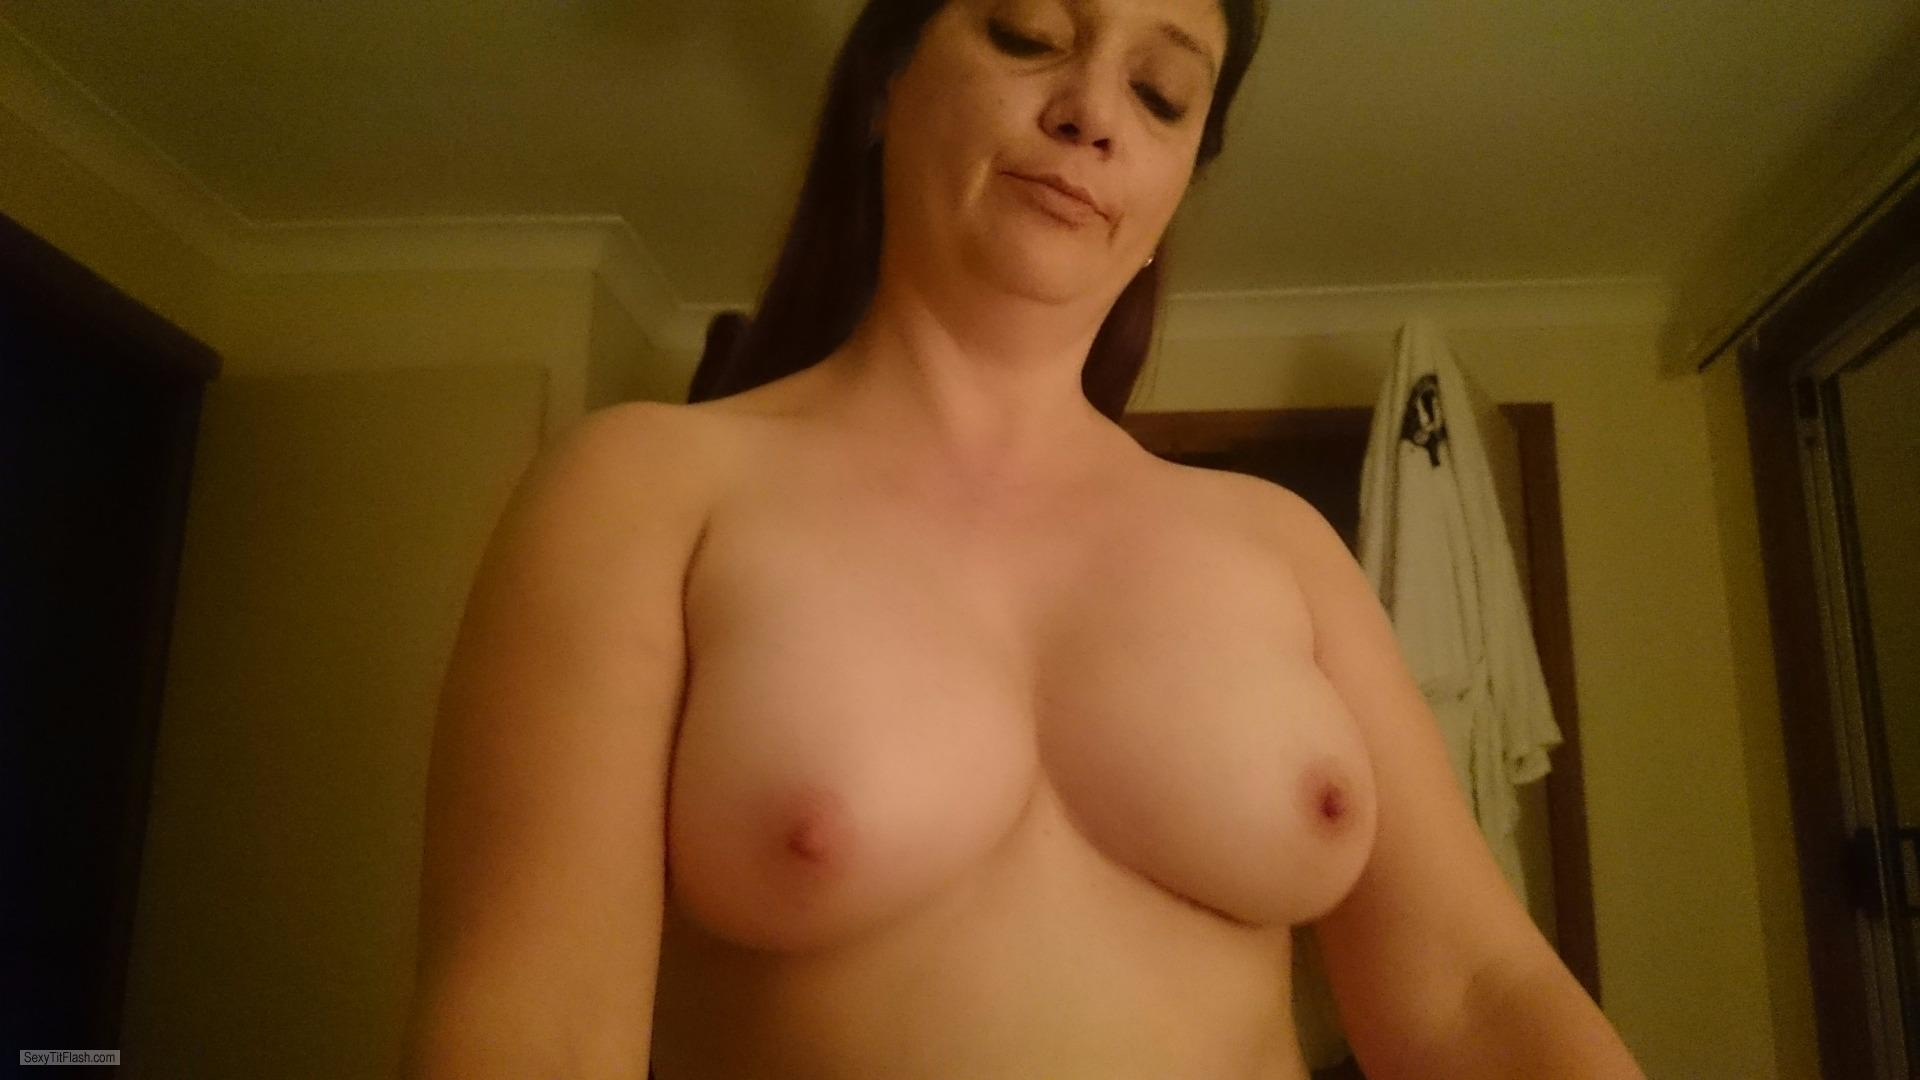 Tit Flash: Wife's Medium Tits (Selfie) - Topless 46yo Mature from Australia